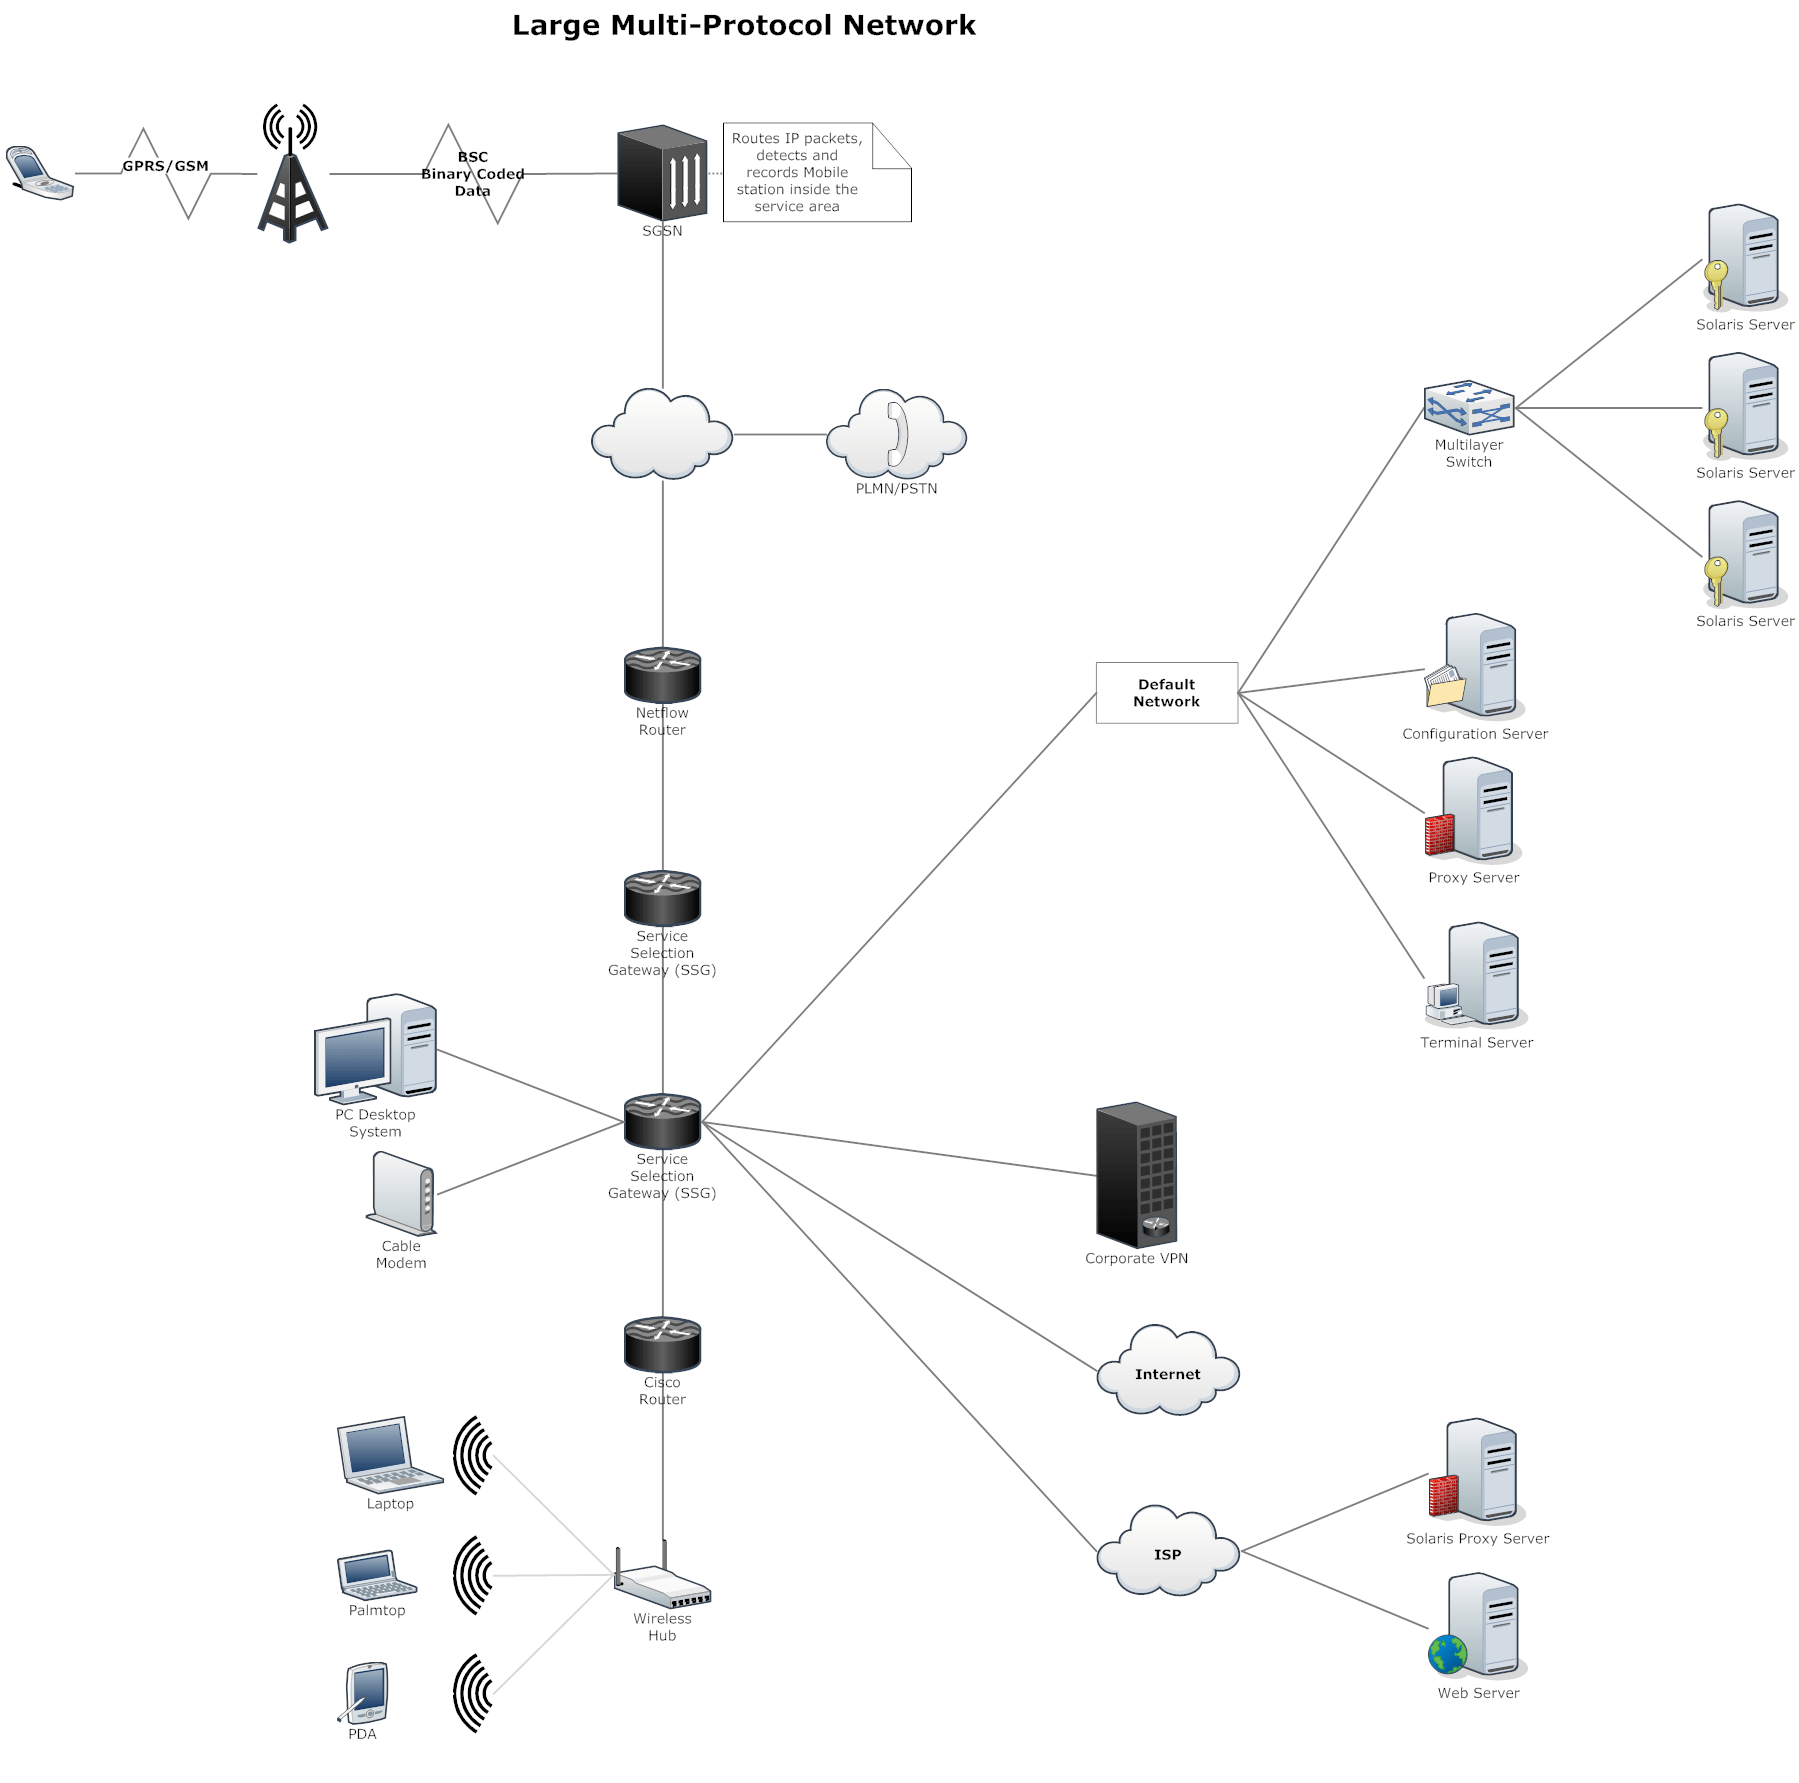 Logical Network Diagram Visio Template